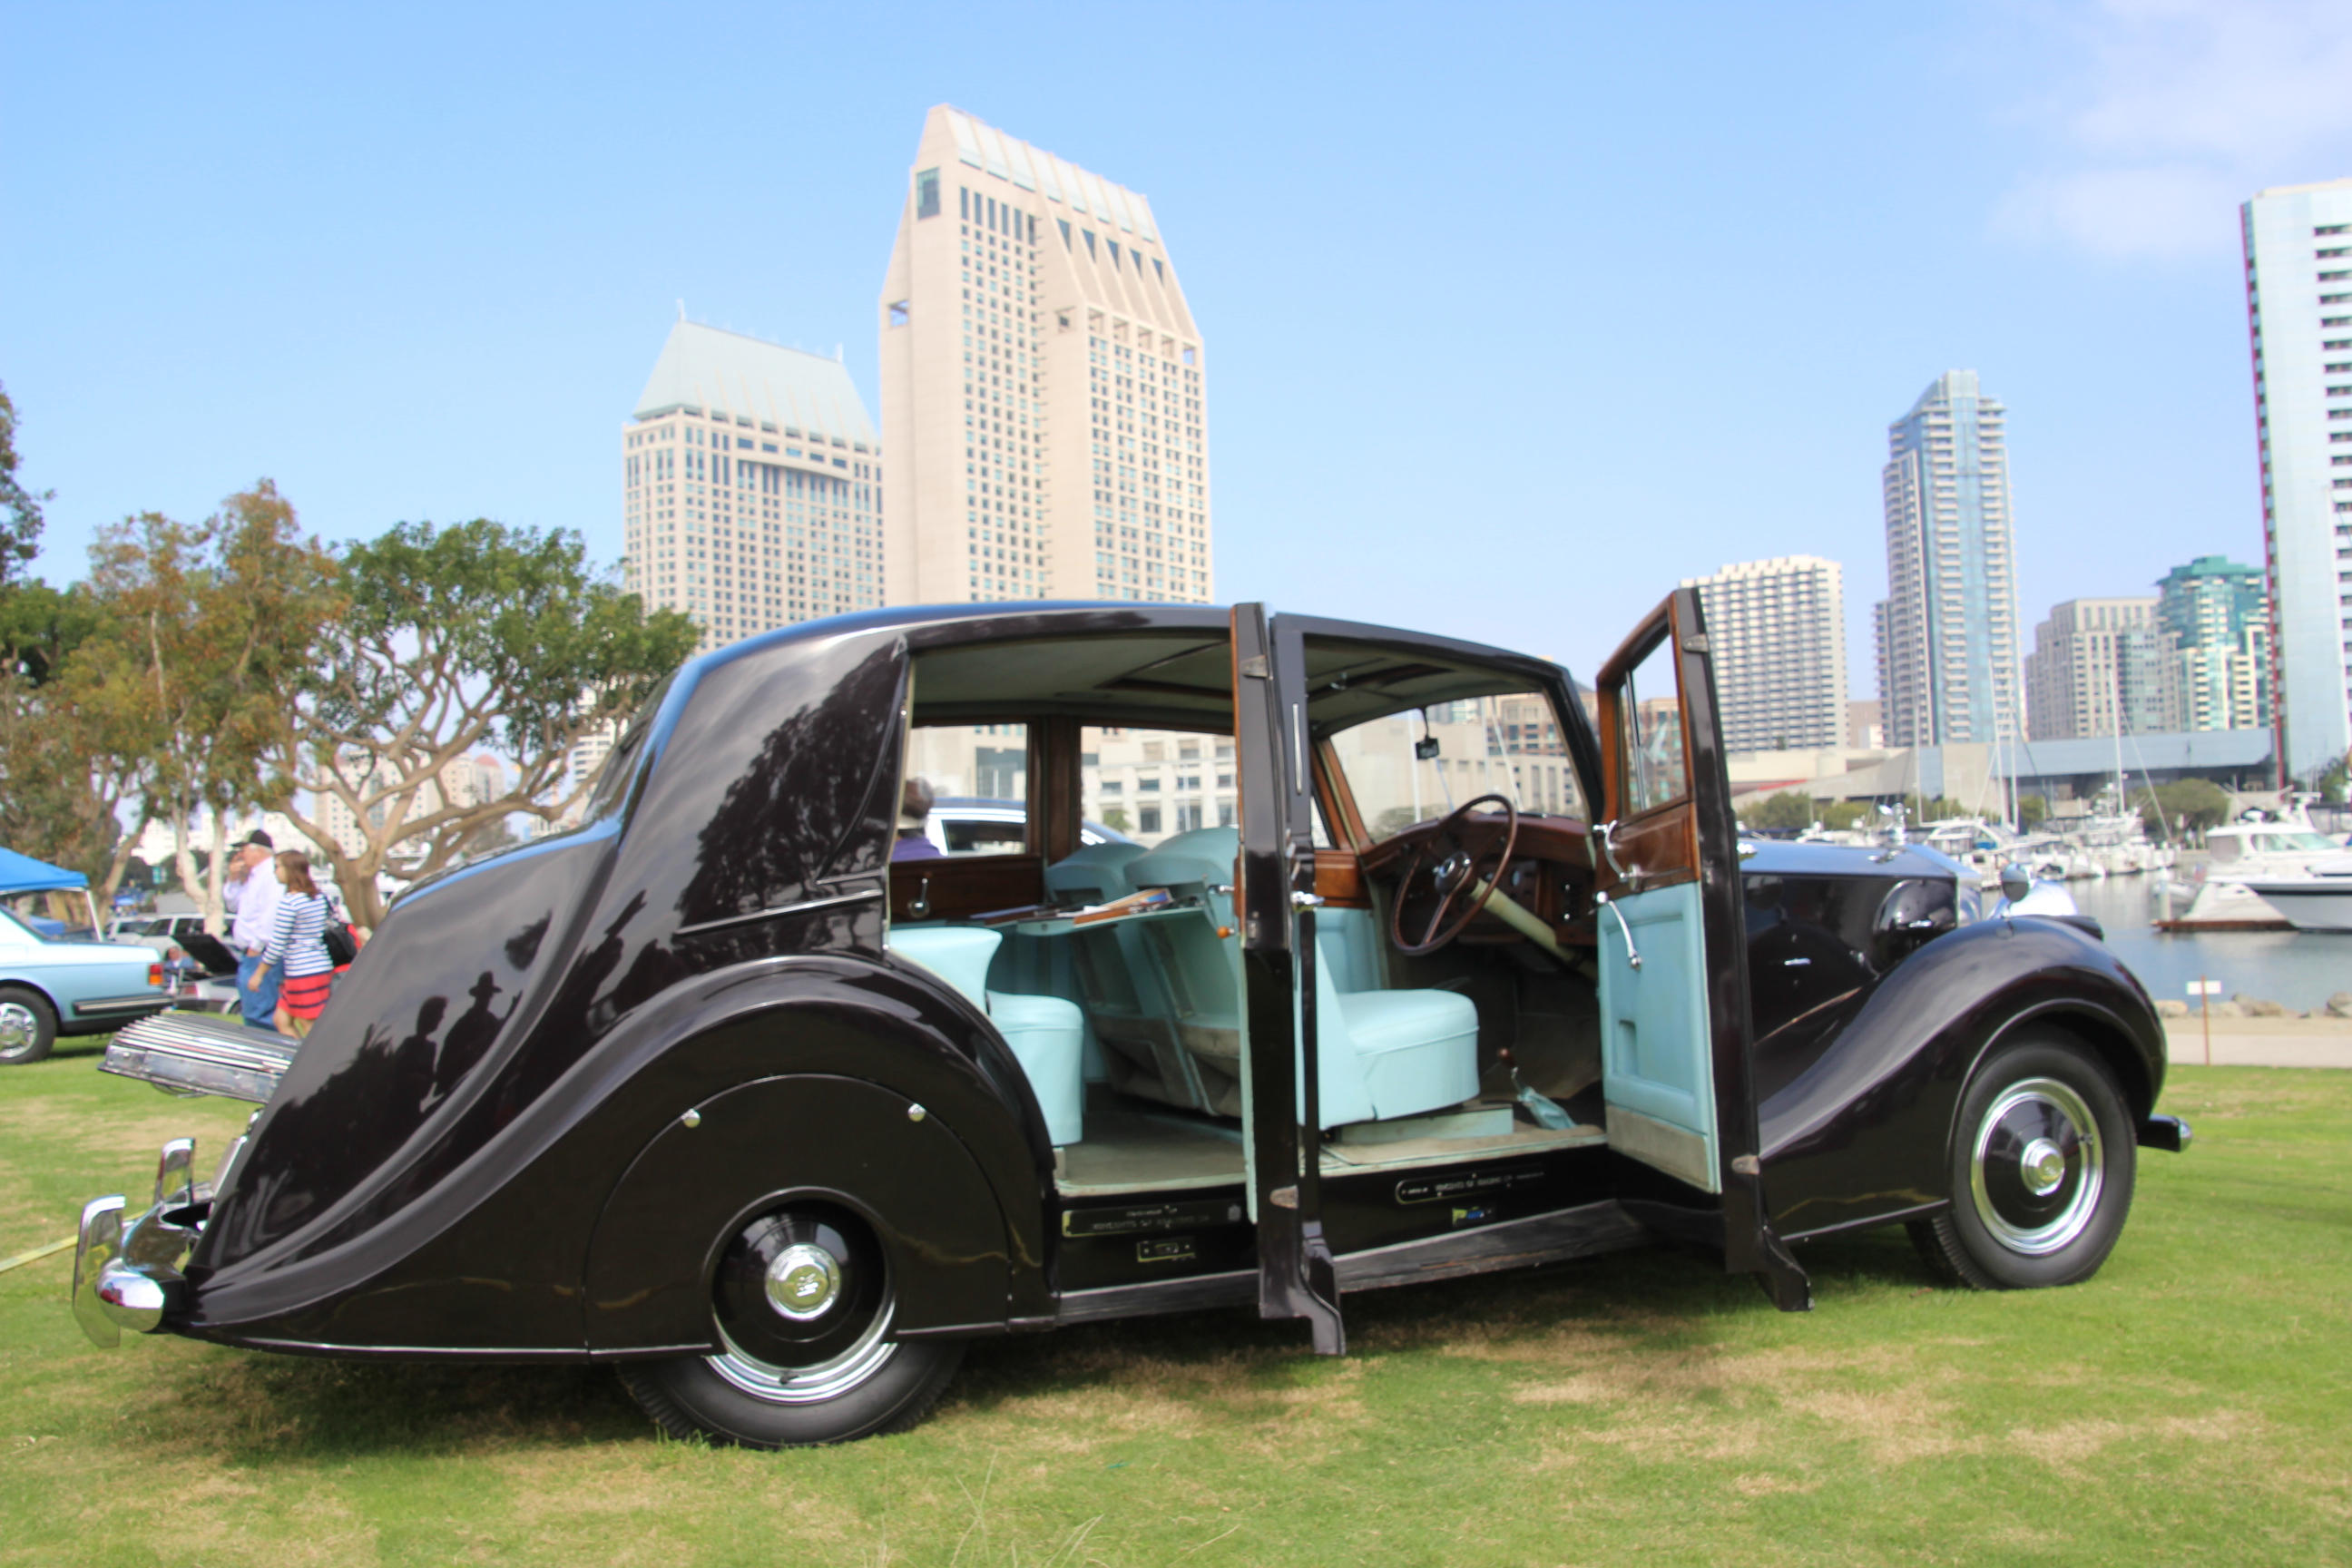 1951 Rolls Royce Silver Wraith WOF1 at a car show with all doors open and interior showing